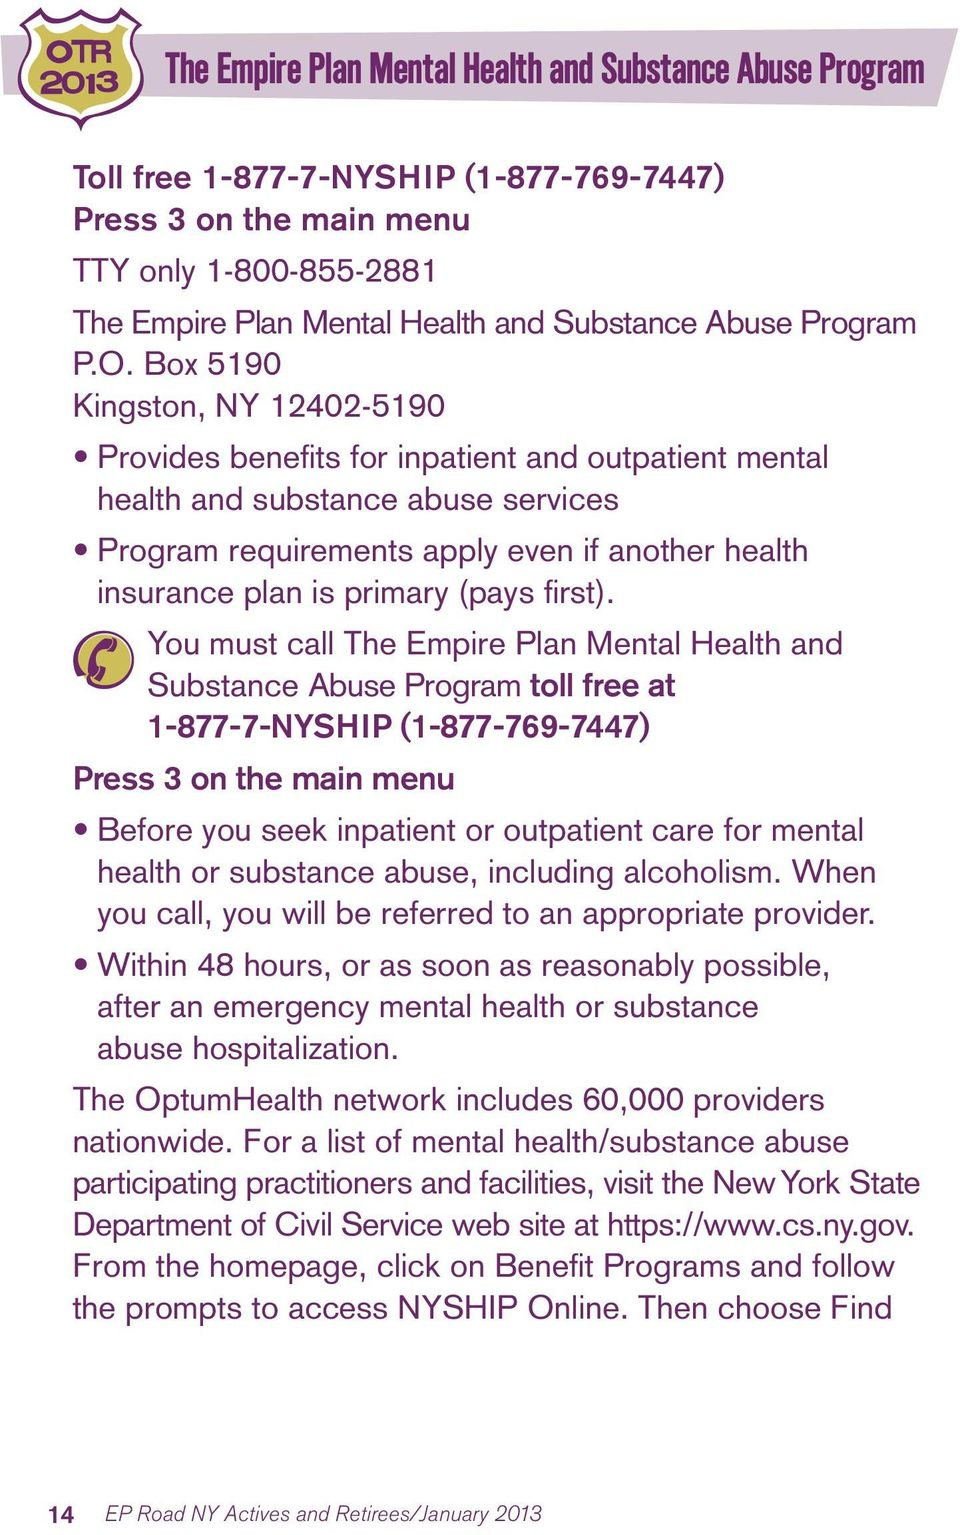 Box 5190 Kingston, NY 12402-5190 Provides benefits for inpatient and outpatient mental health and substance abuse services Program requirements apply even if another health insurance plan is primary